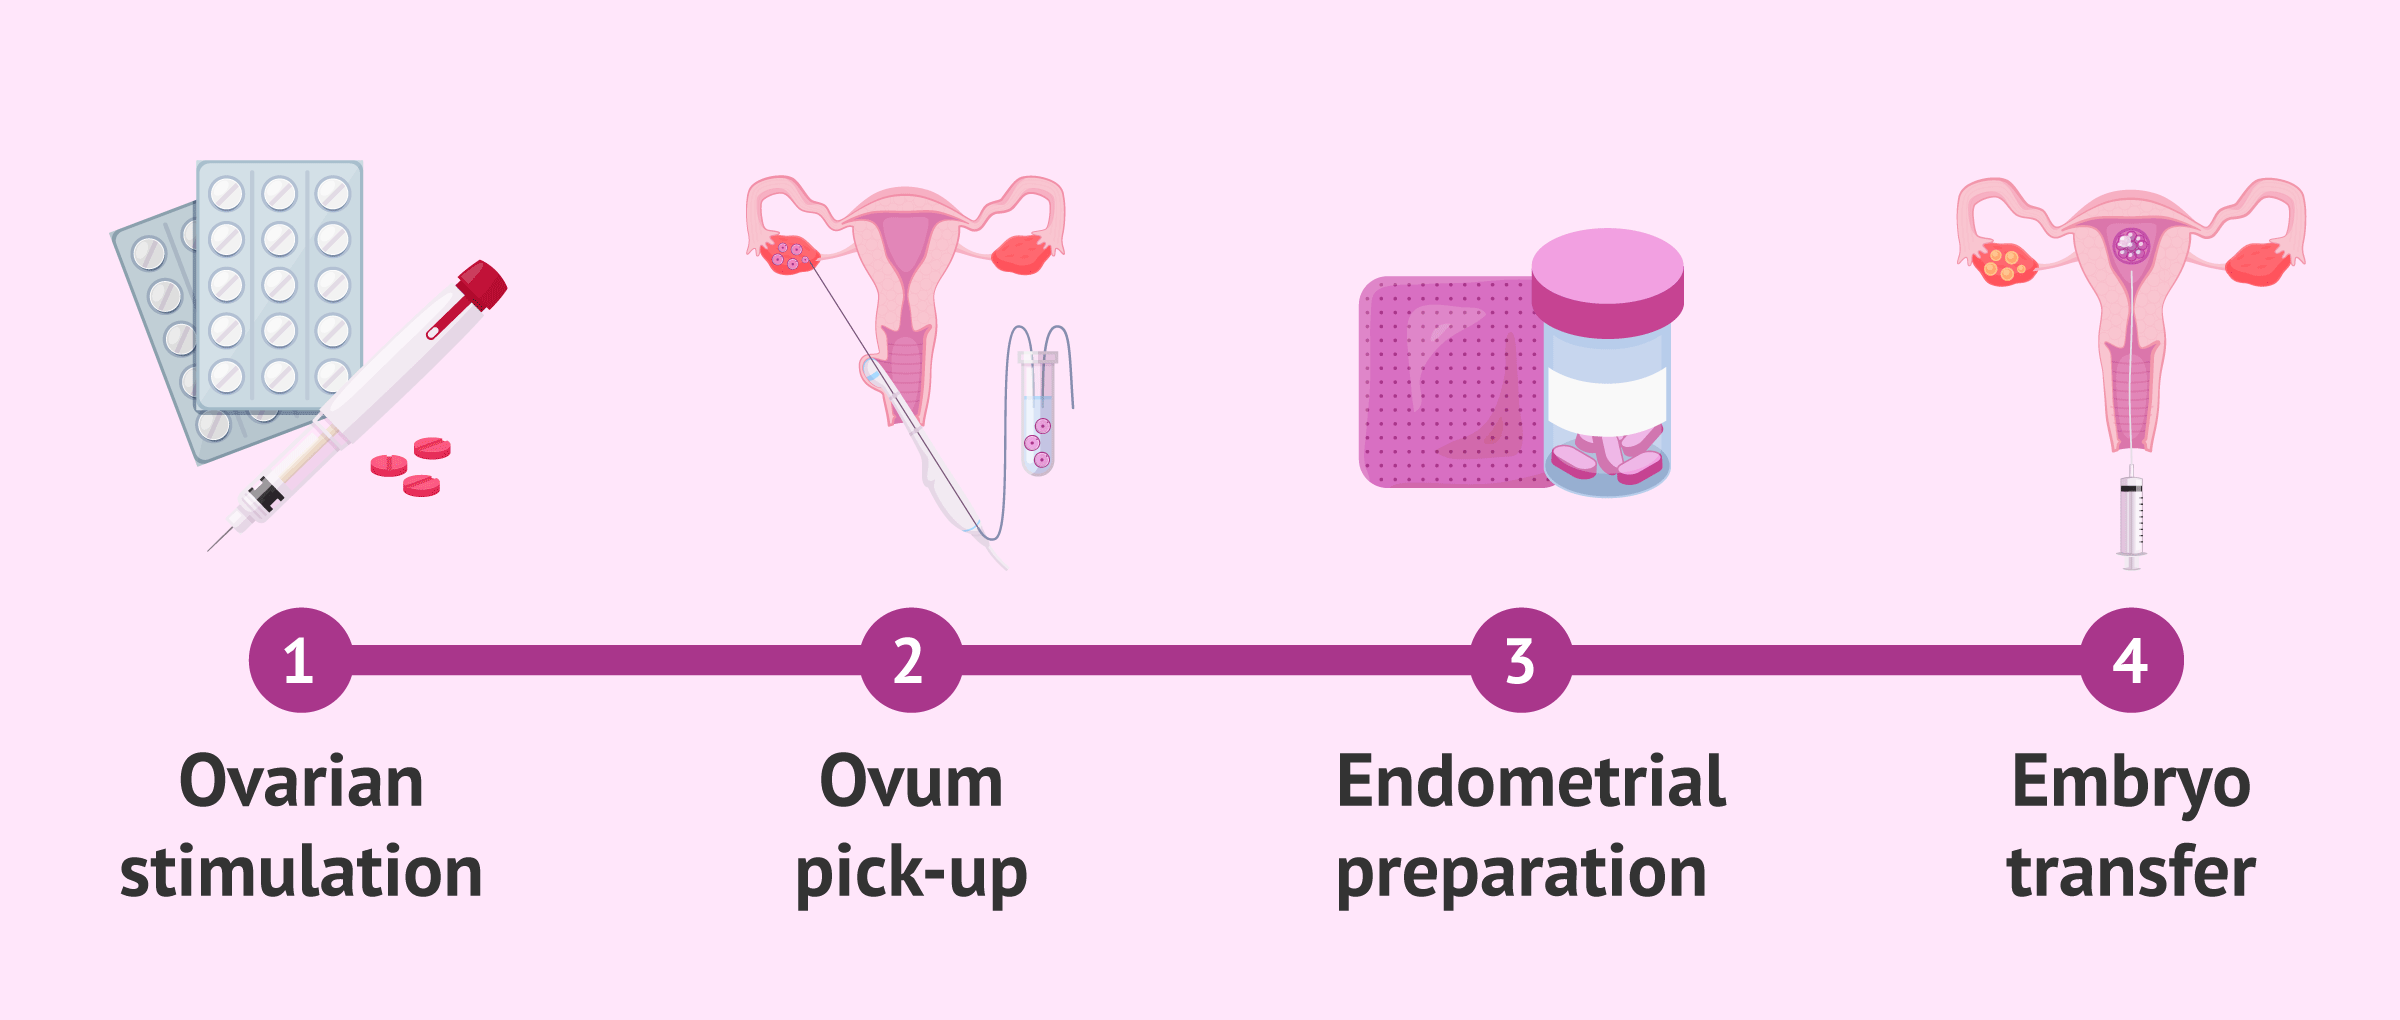 Imagen: Stages of <a href='https://www.51rry.com/page/1613/' title='IVF'>IVF</a> until embryo transfer